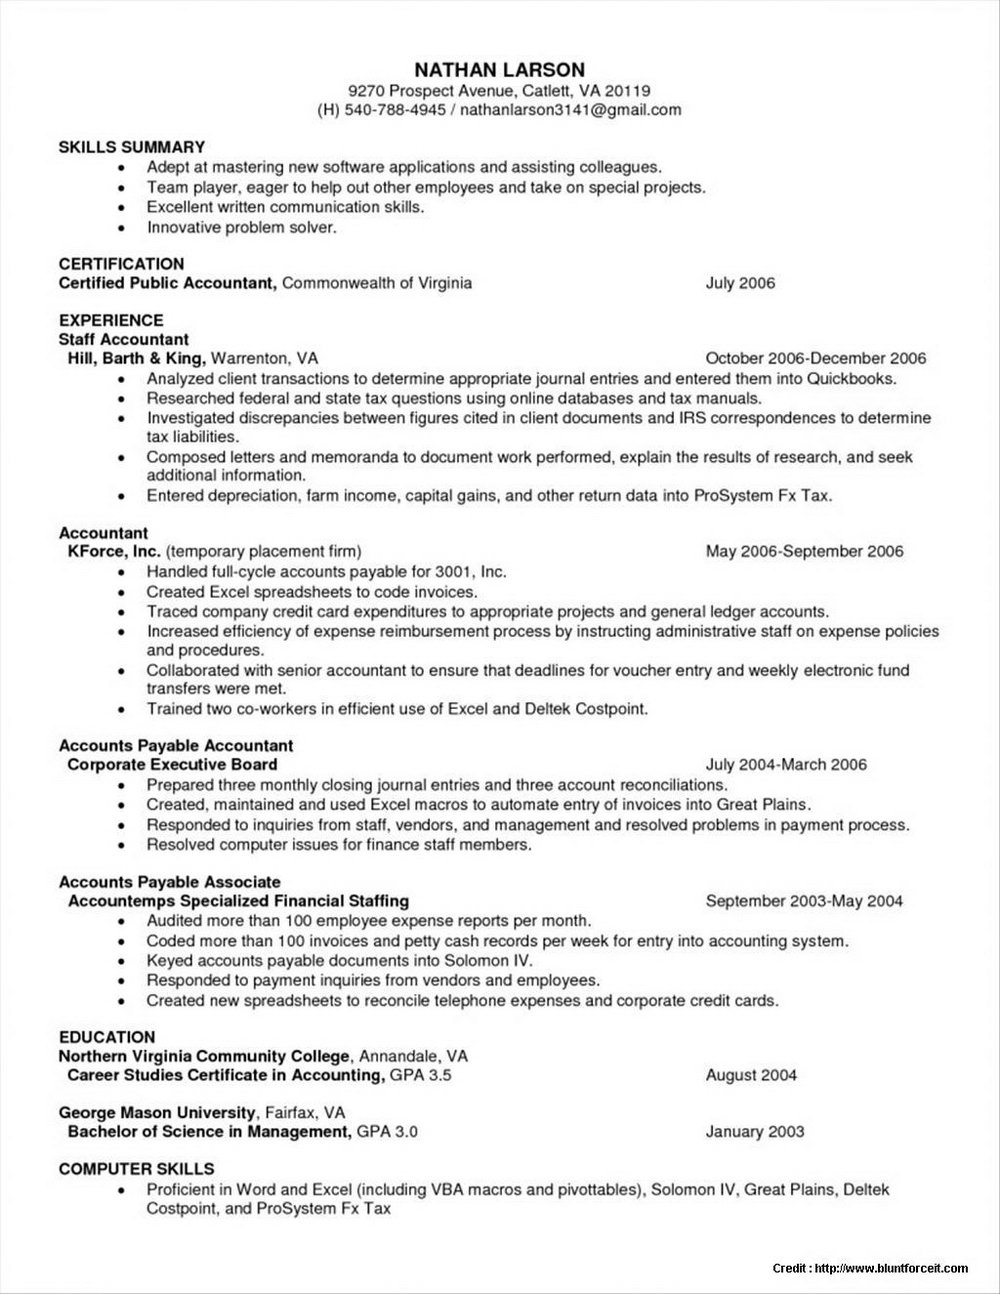 Resume Format Free Download Pdf